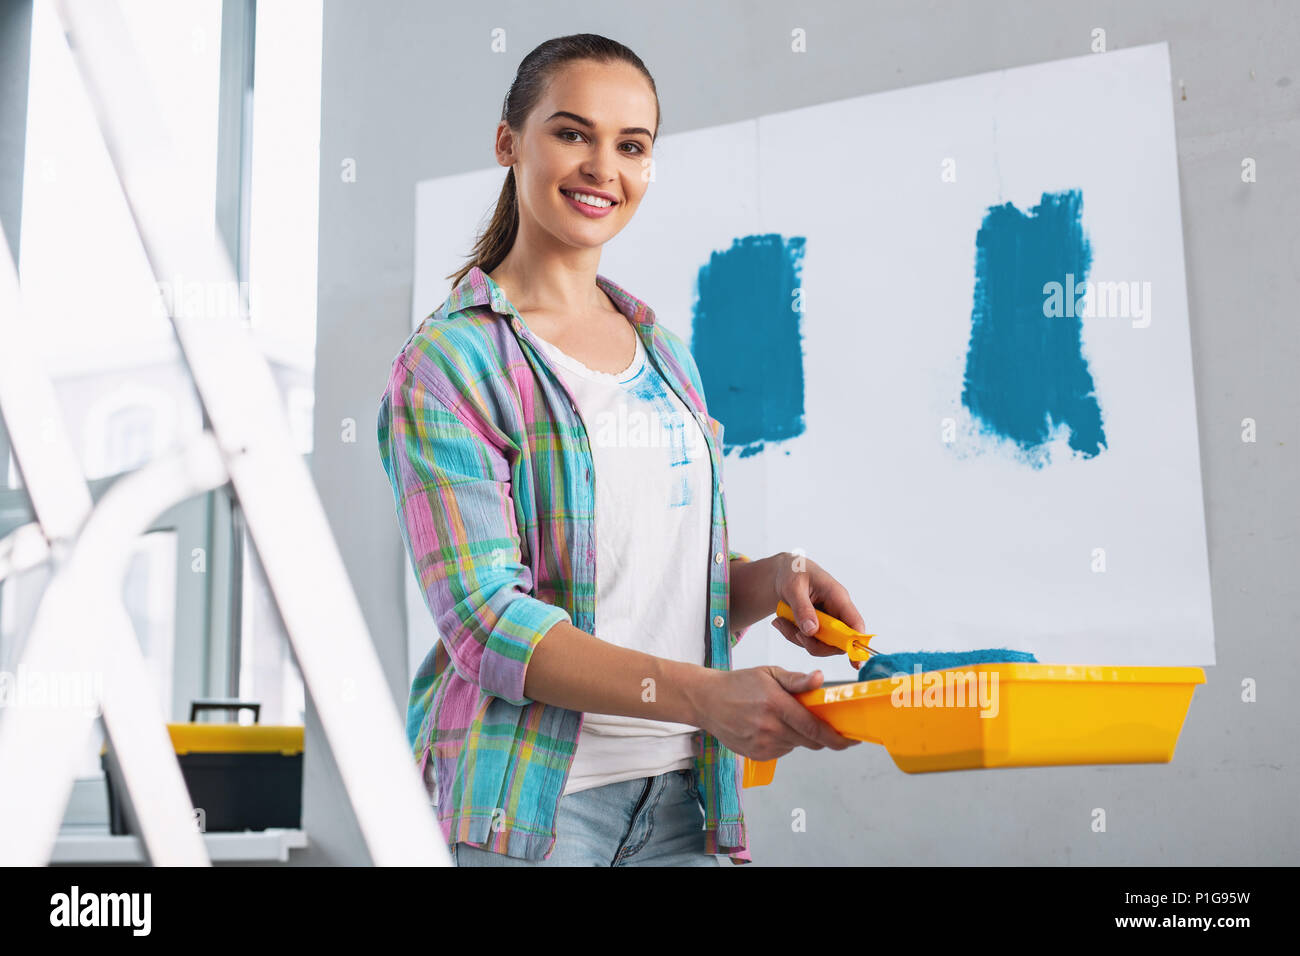 Cheerful girl doing some renovations in her flat - Stock Image